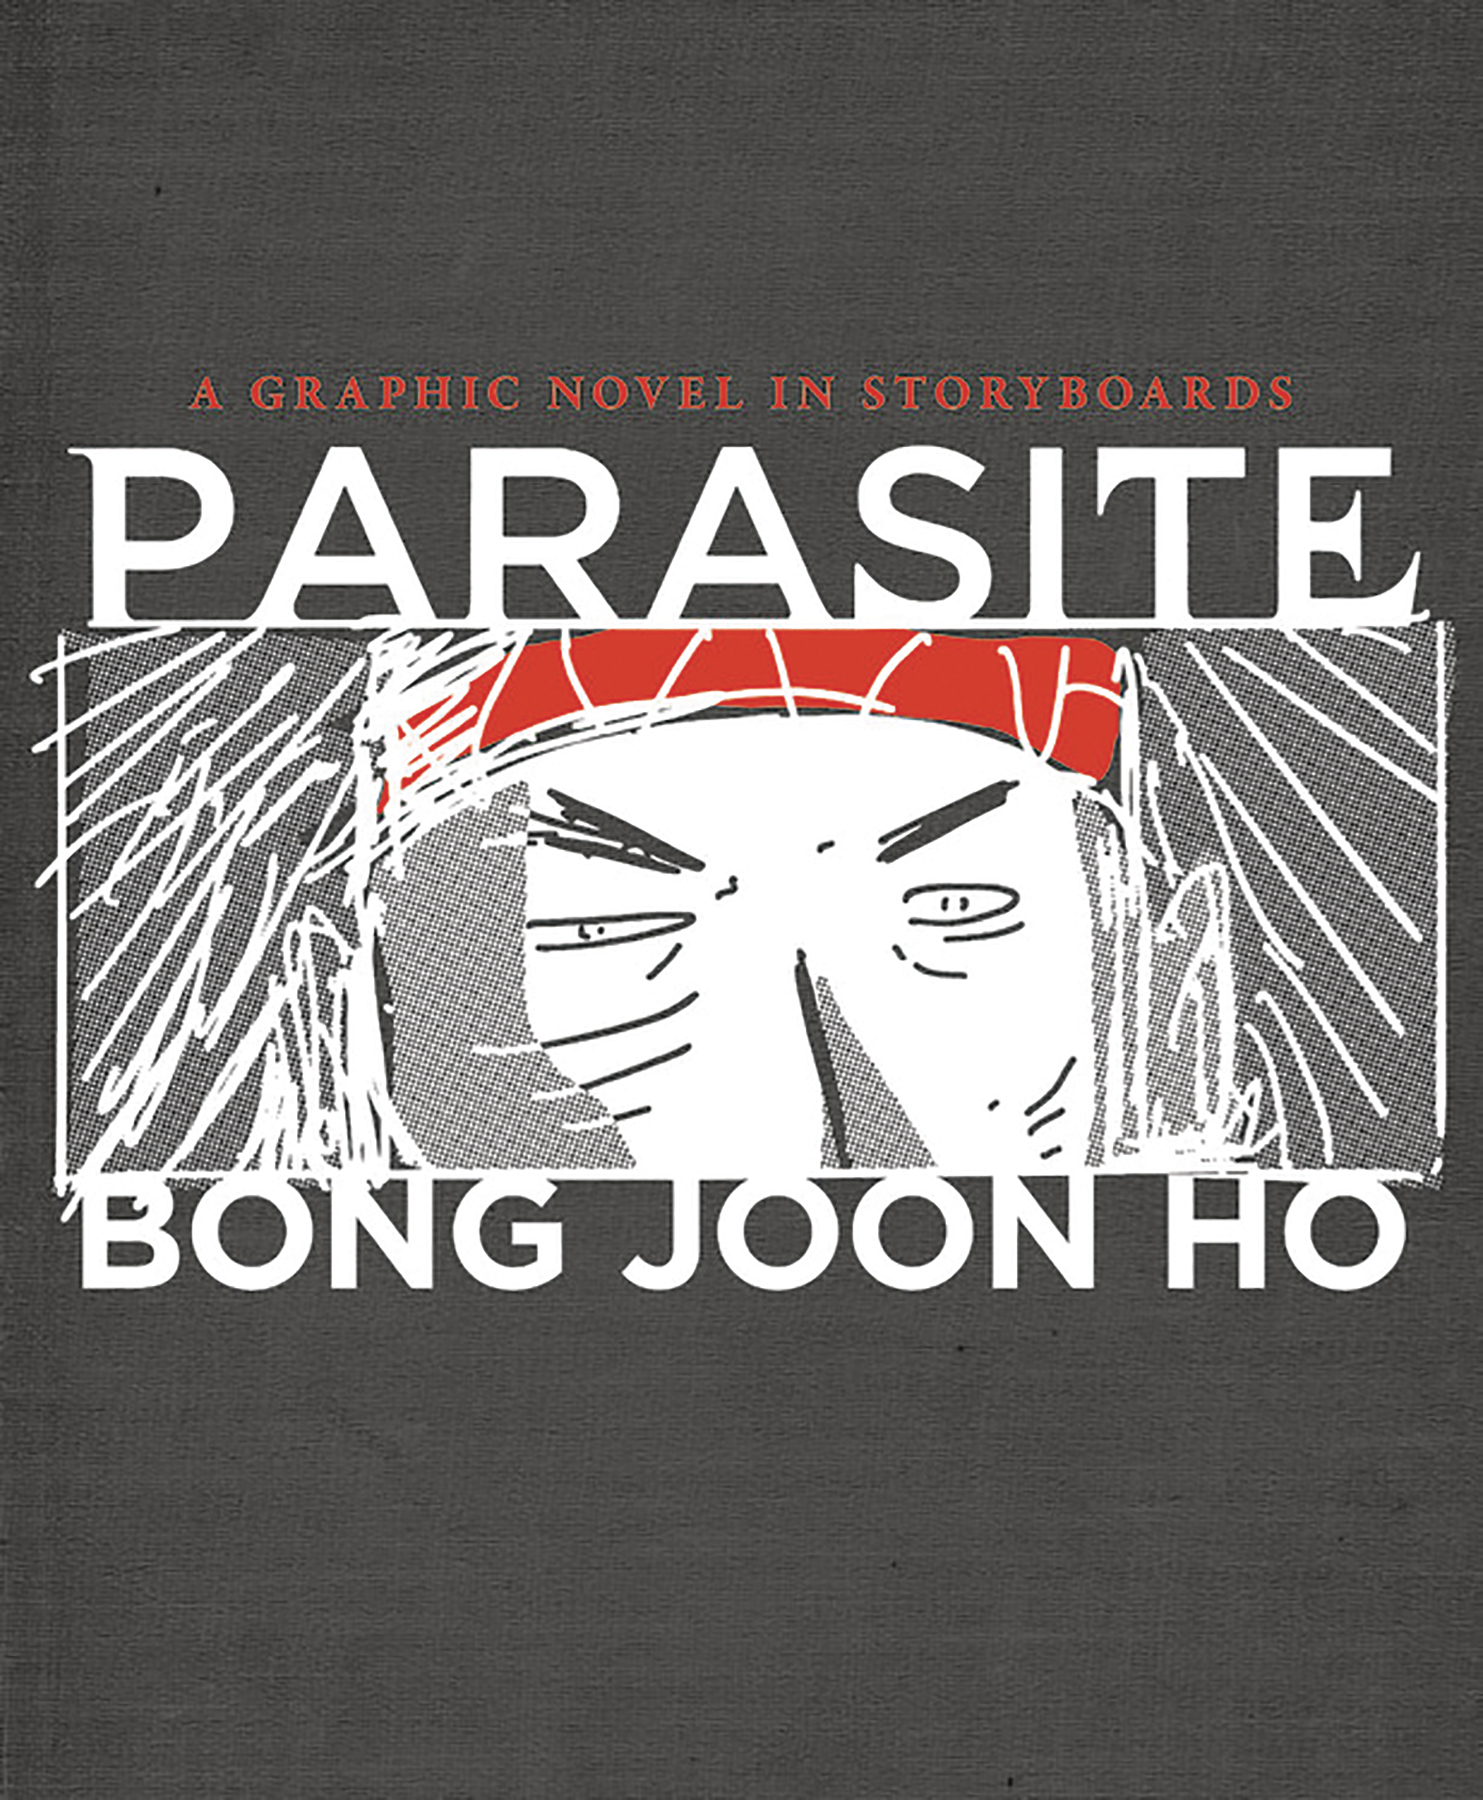 PARASITE GRAPHIC NOVEL IN STORYBOARDS